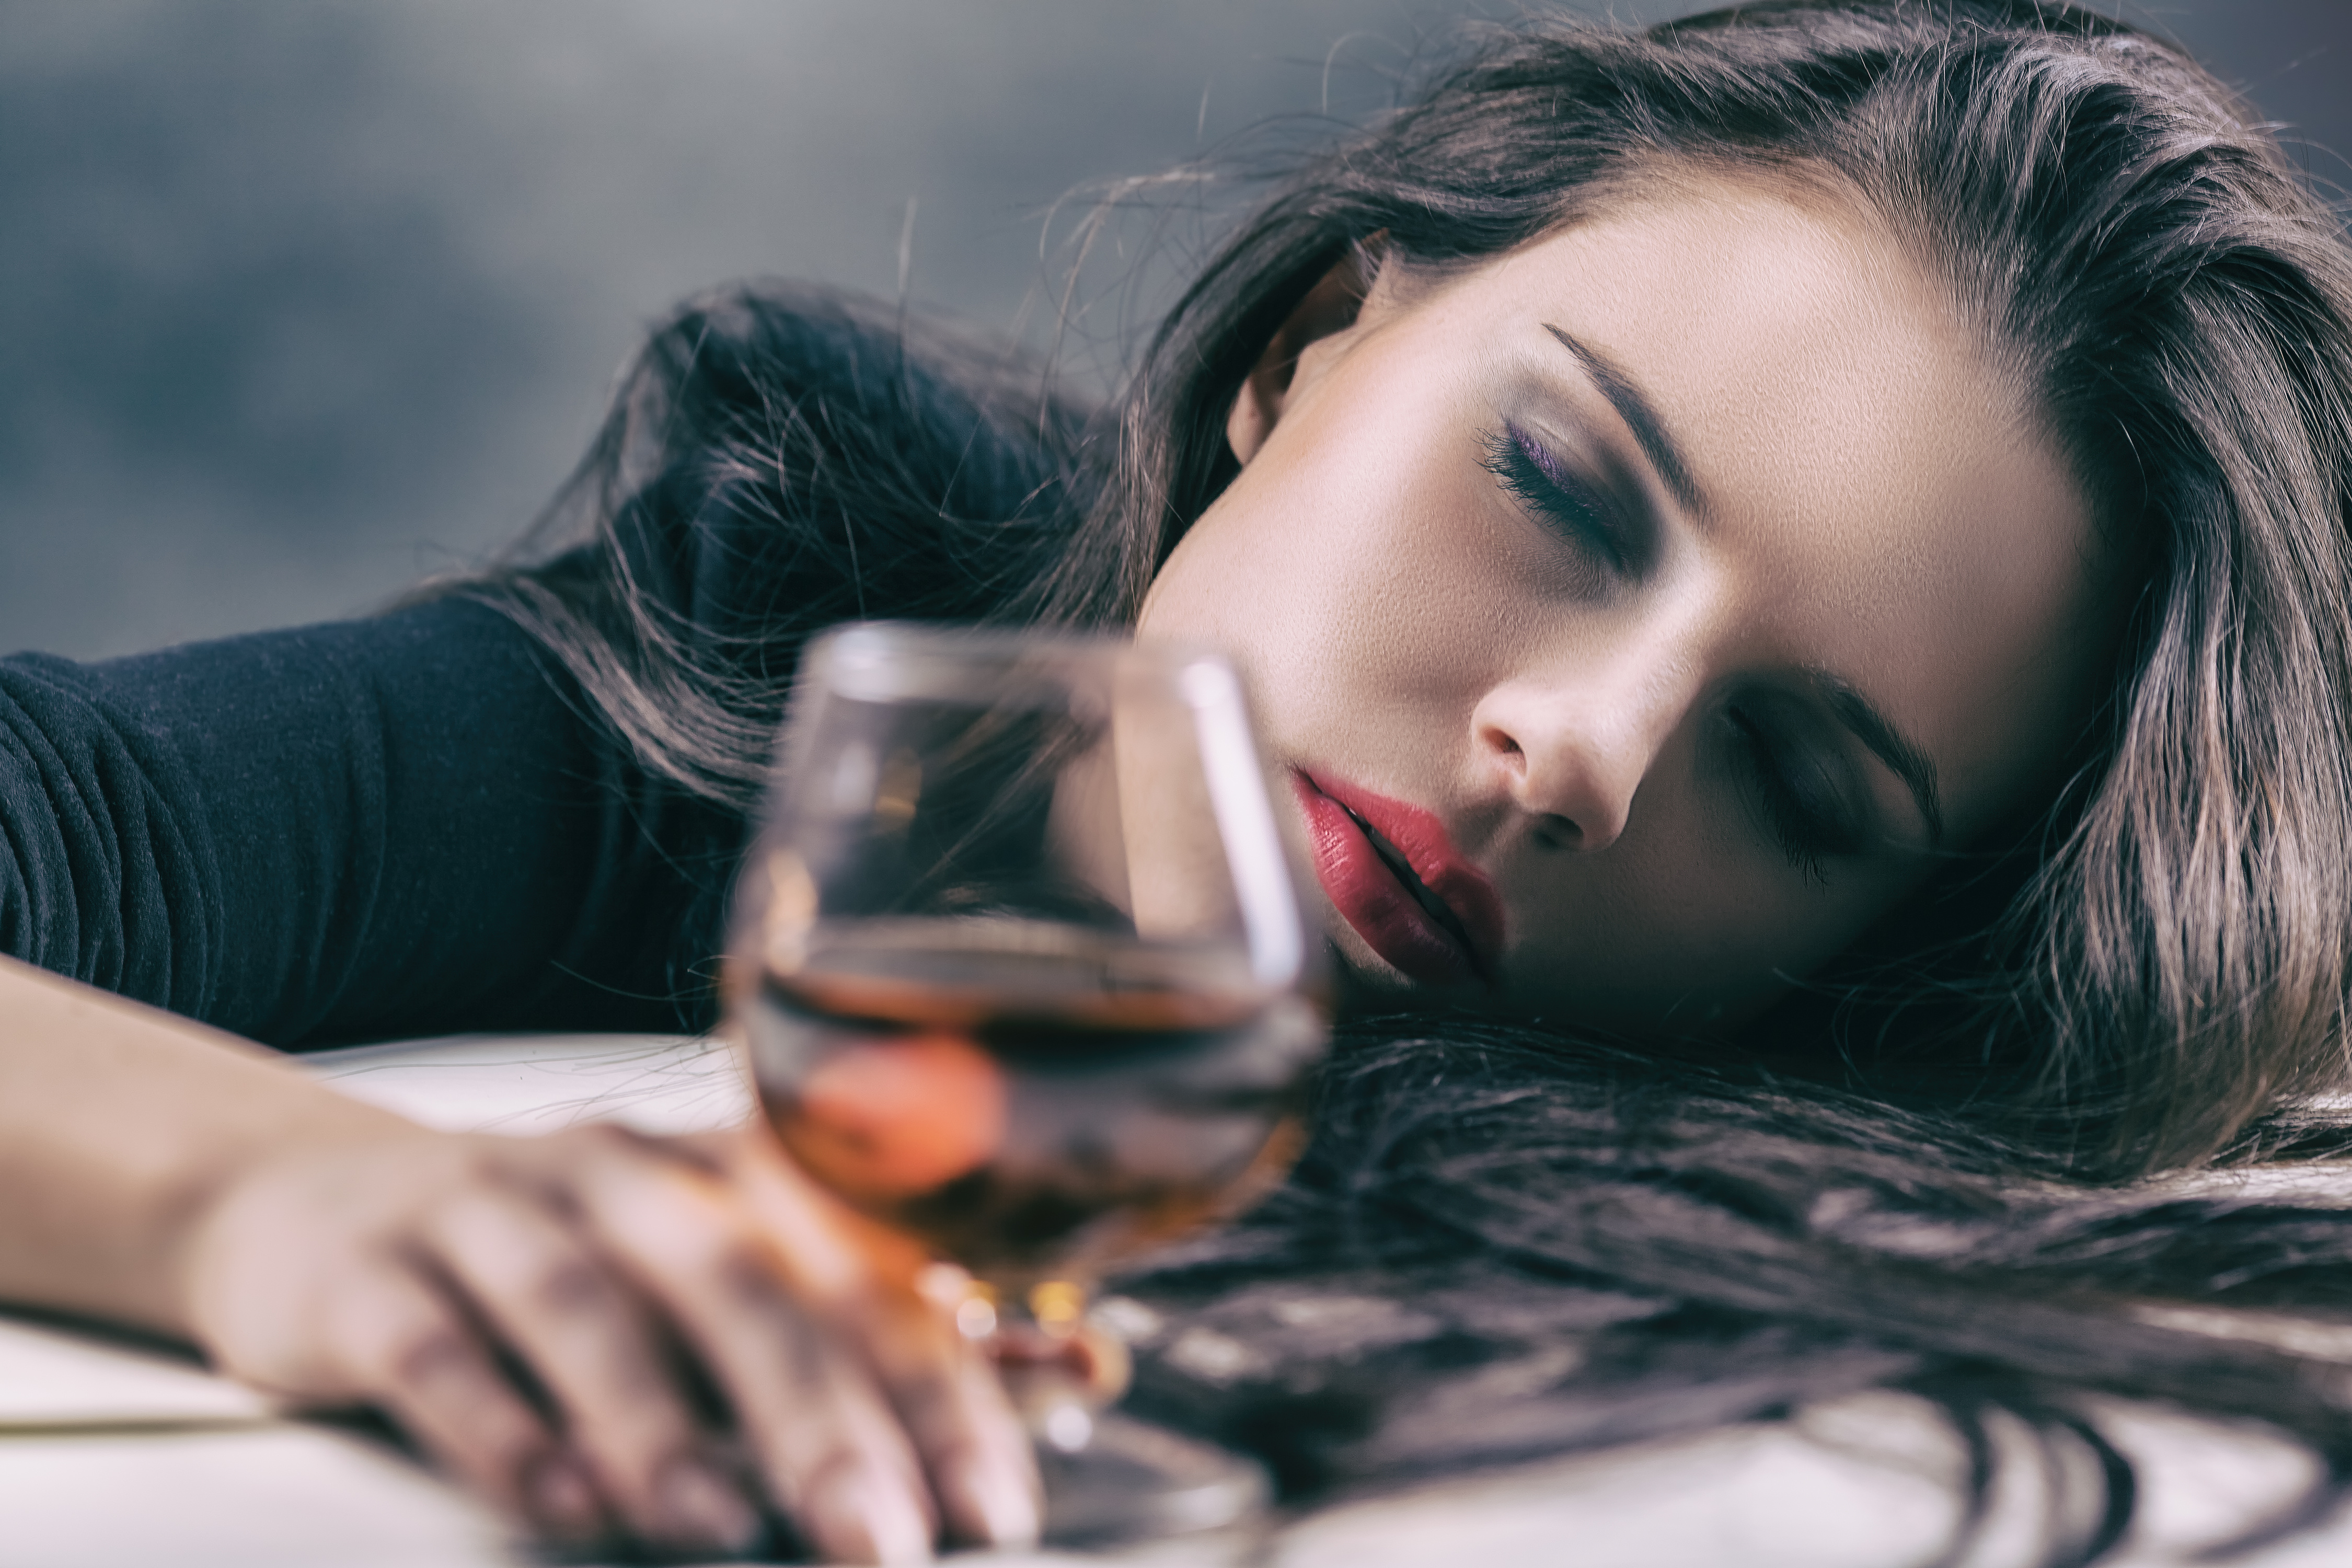 Young beautiful woman drinking alcohol on dark background. Focus on woman